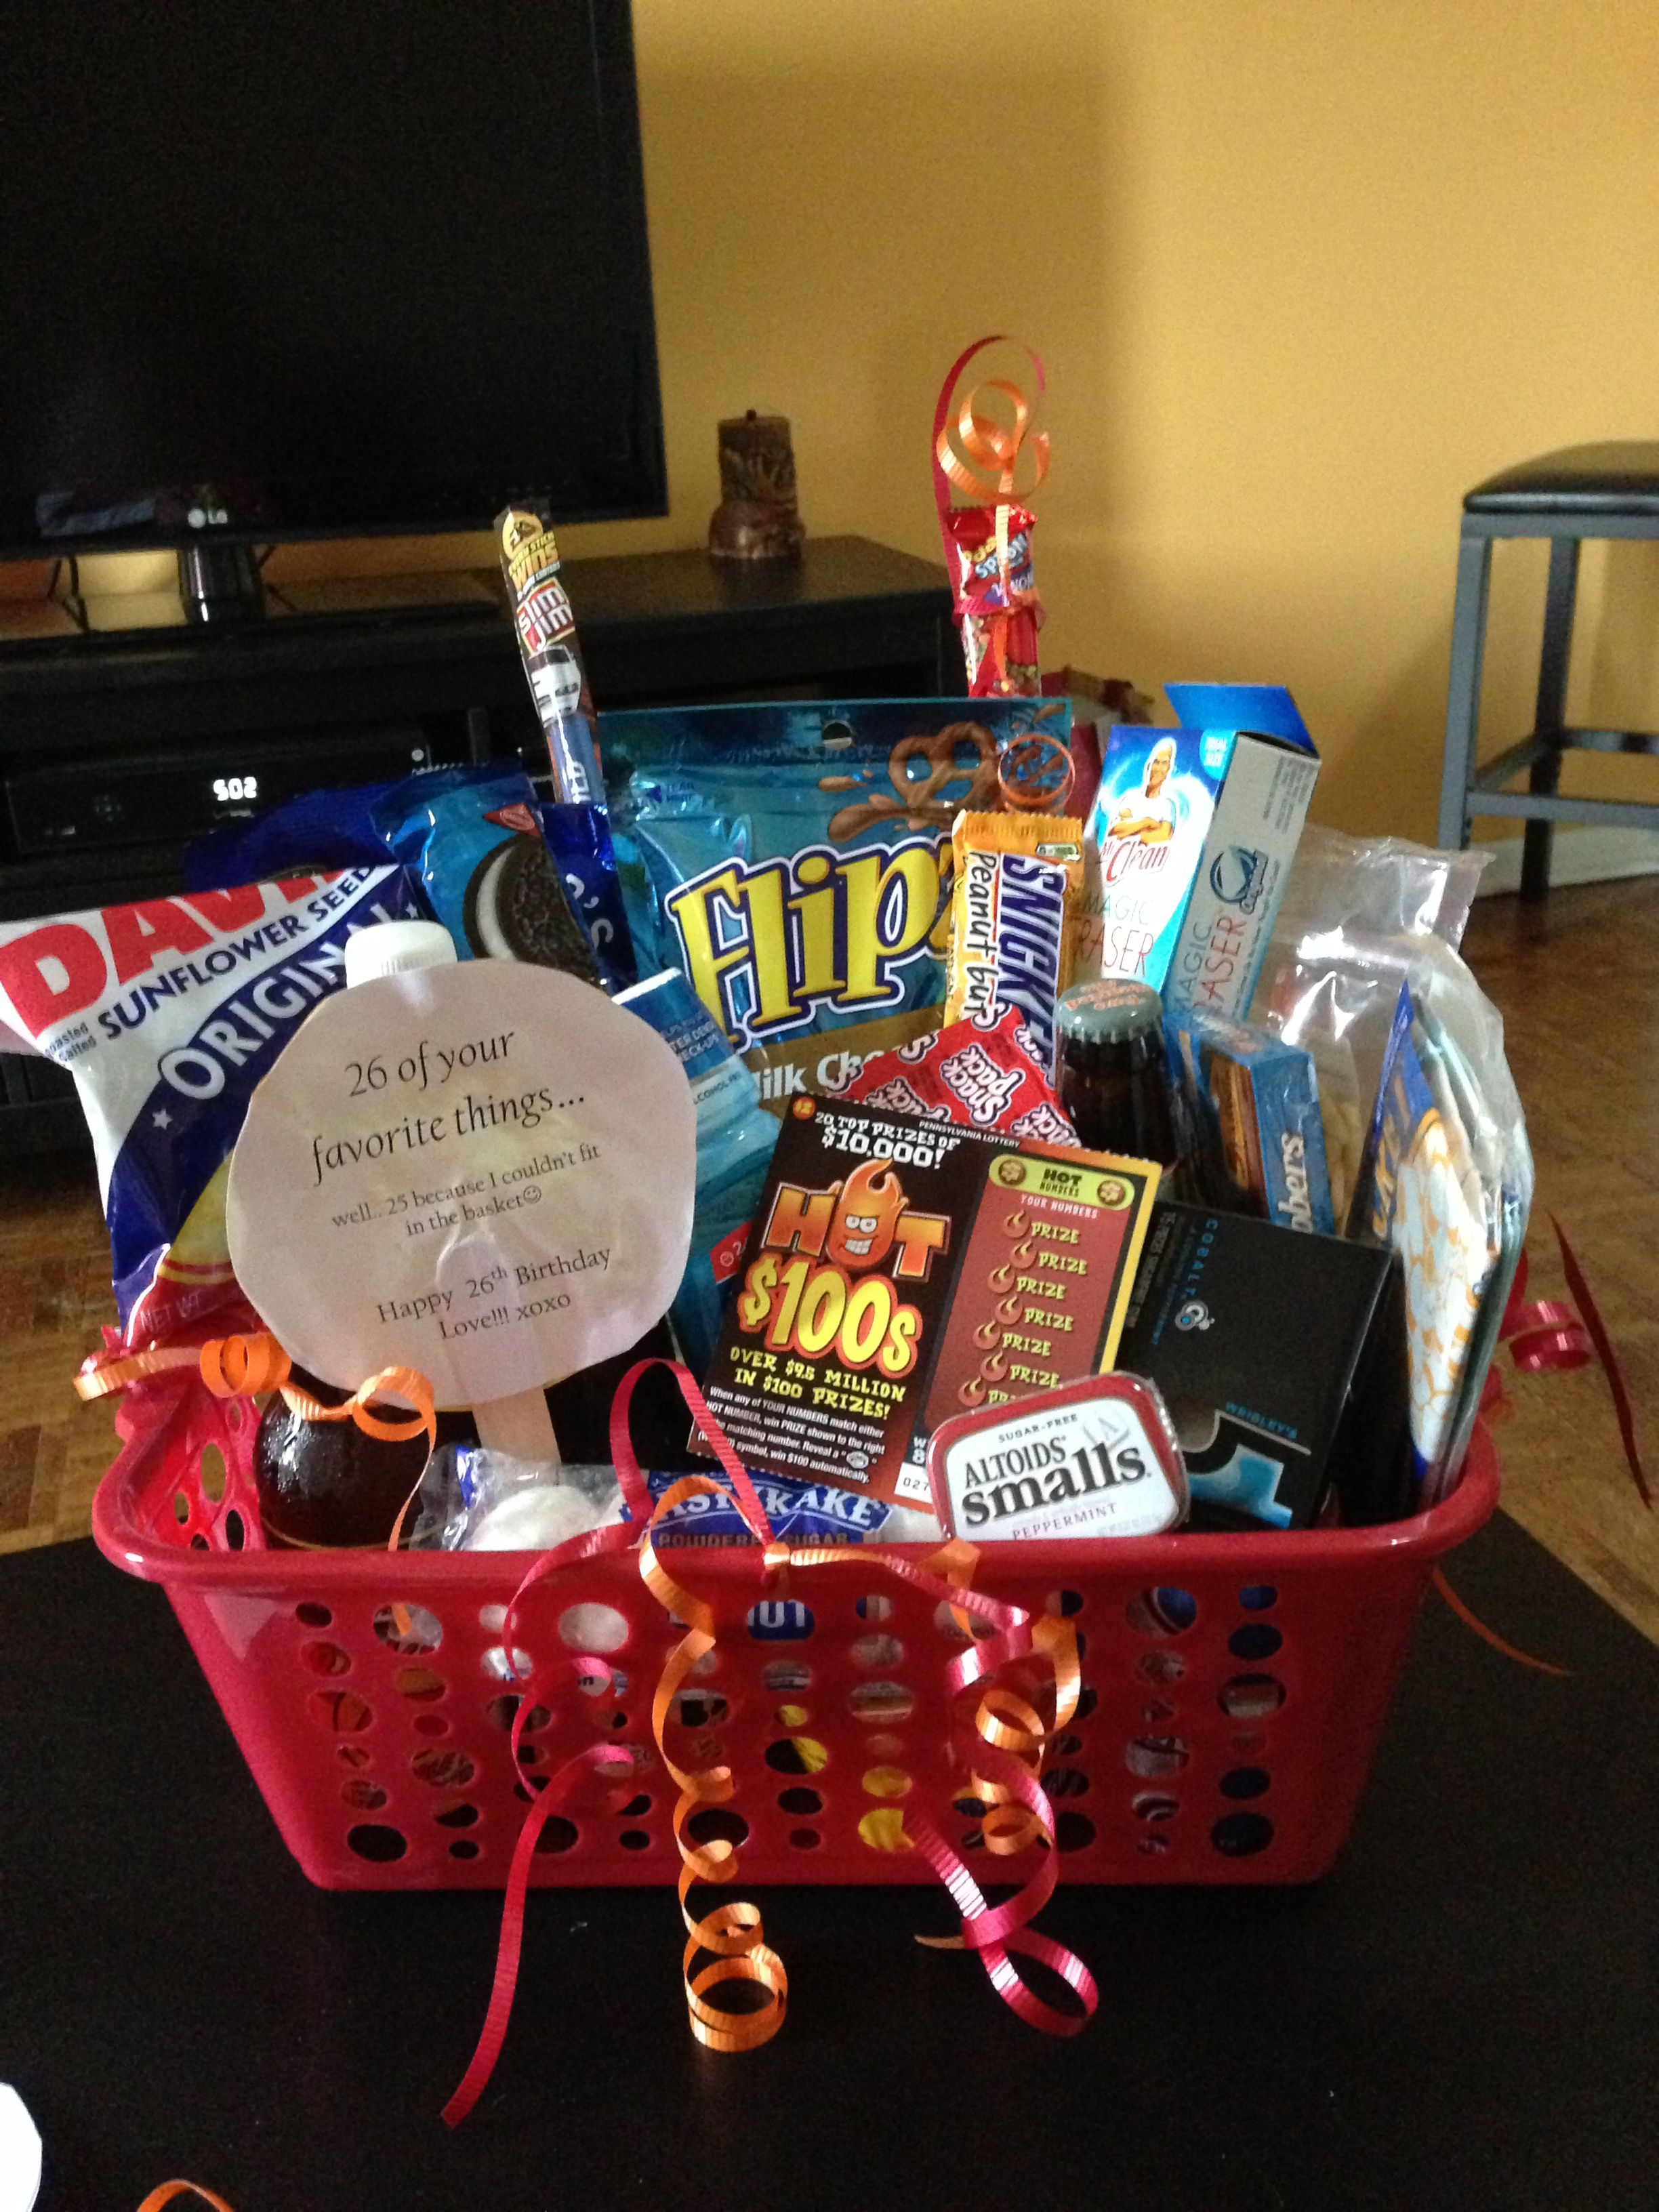 Boyfriend birthday basket 26 of his favorite things for for Presents for boyfriends birthday